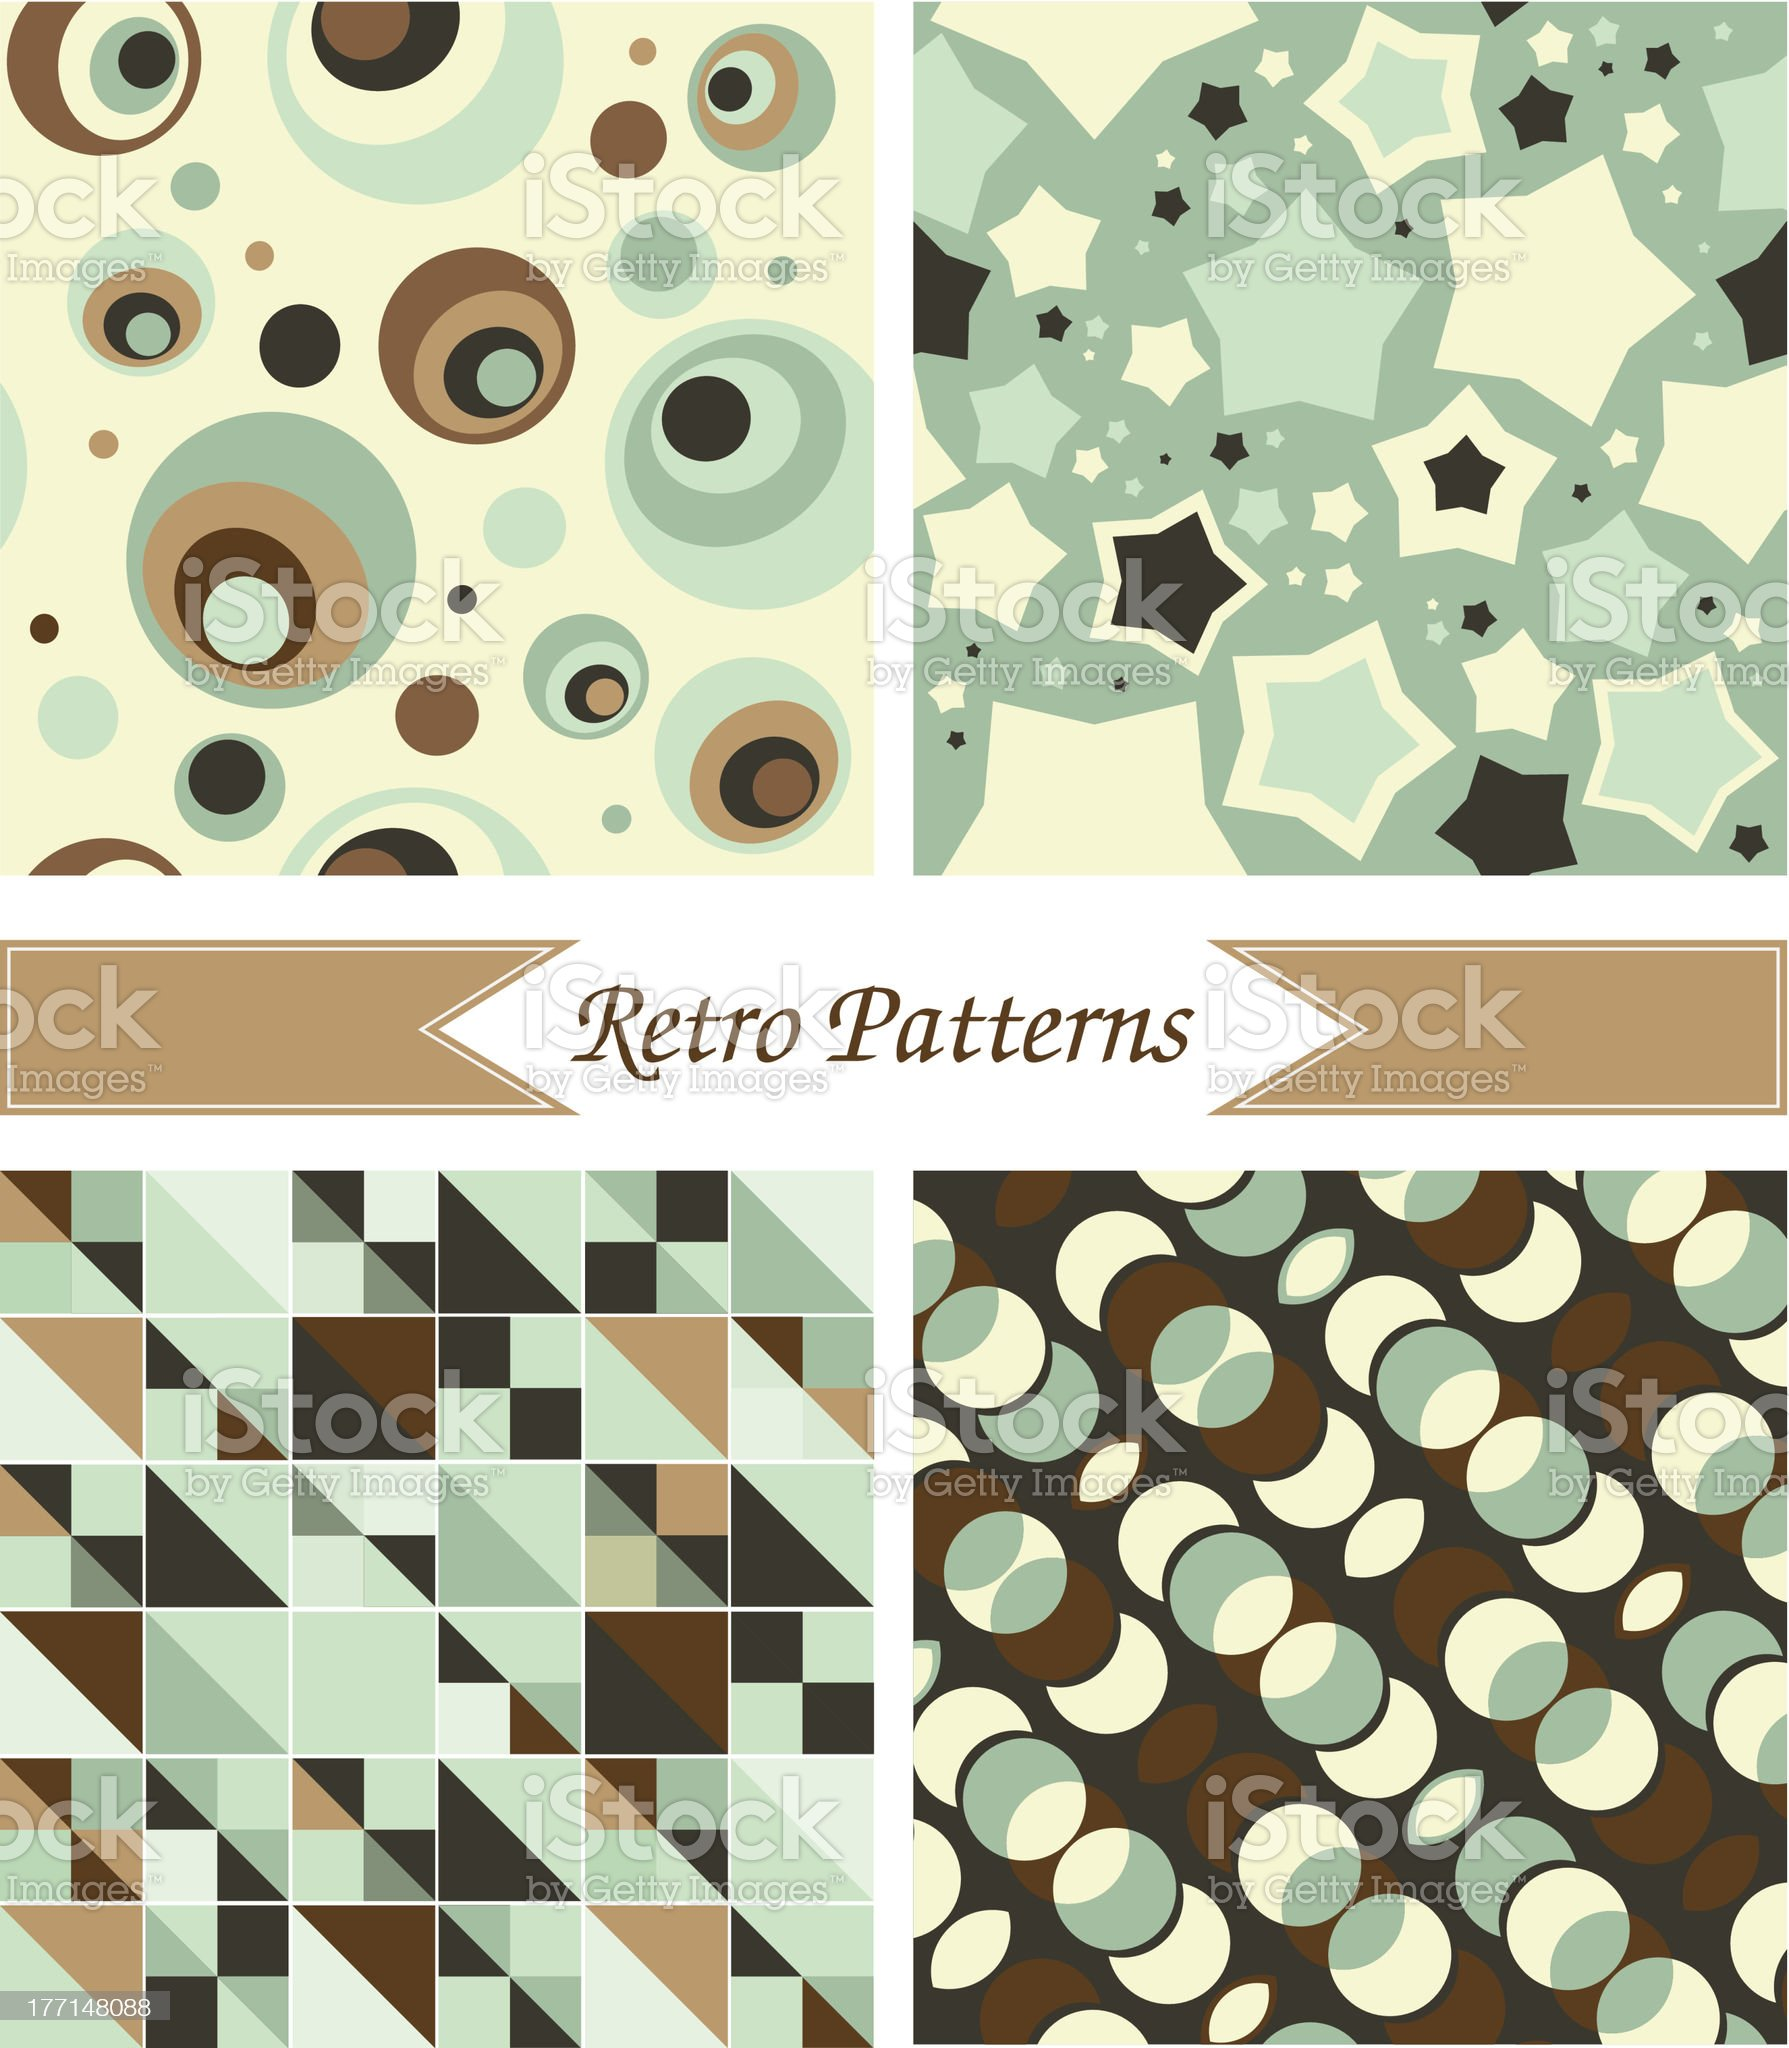 Vintage patterns royalty-free stock vector art